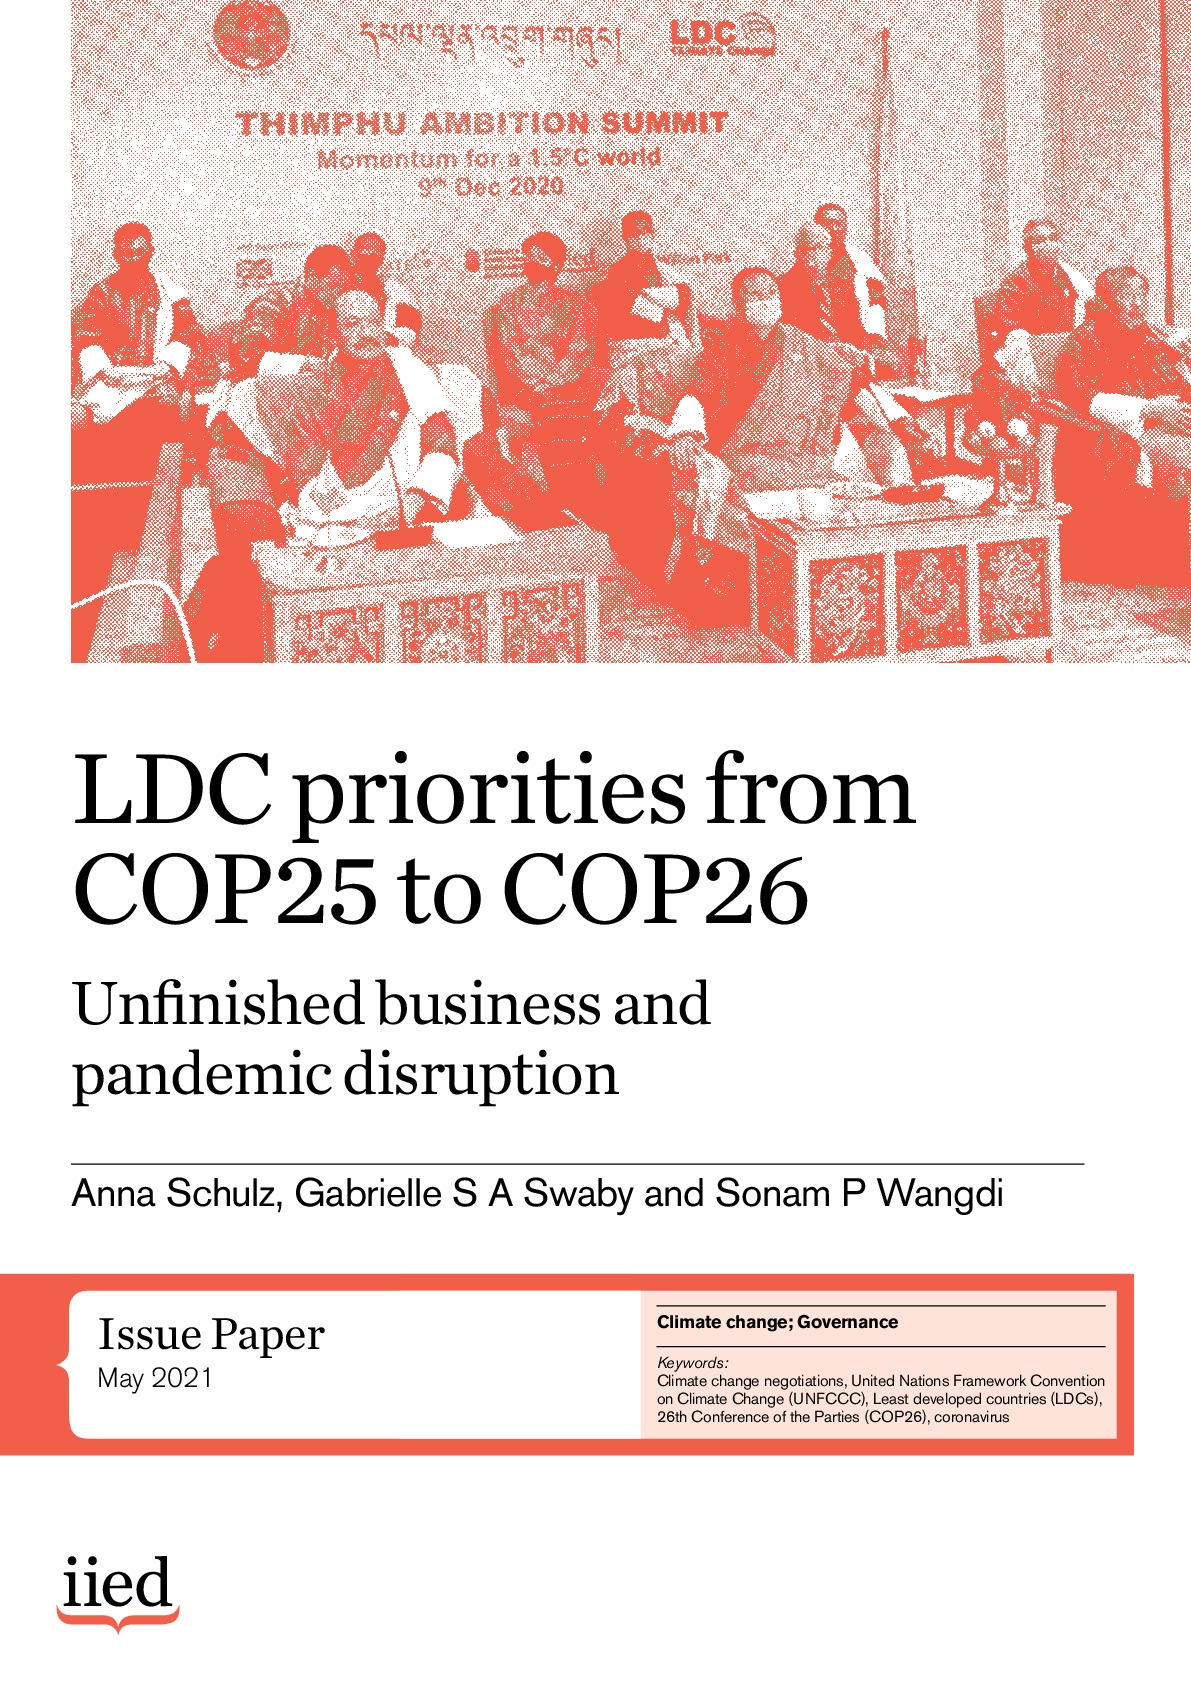 LDC priorities from COP25 to COP26: Unfinished business and pandemic disruption